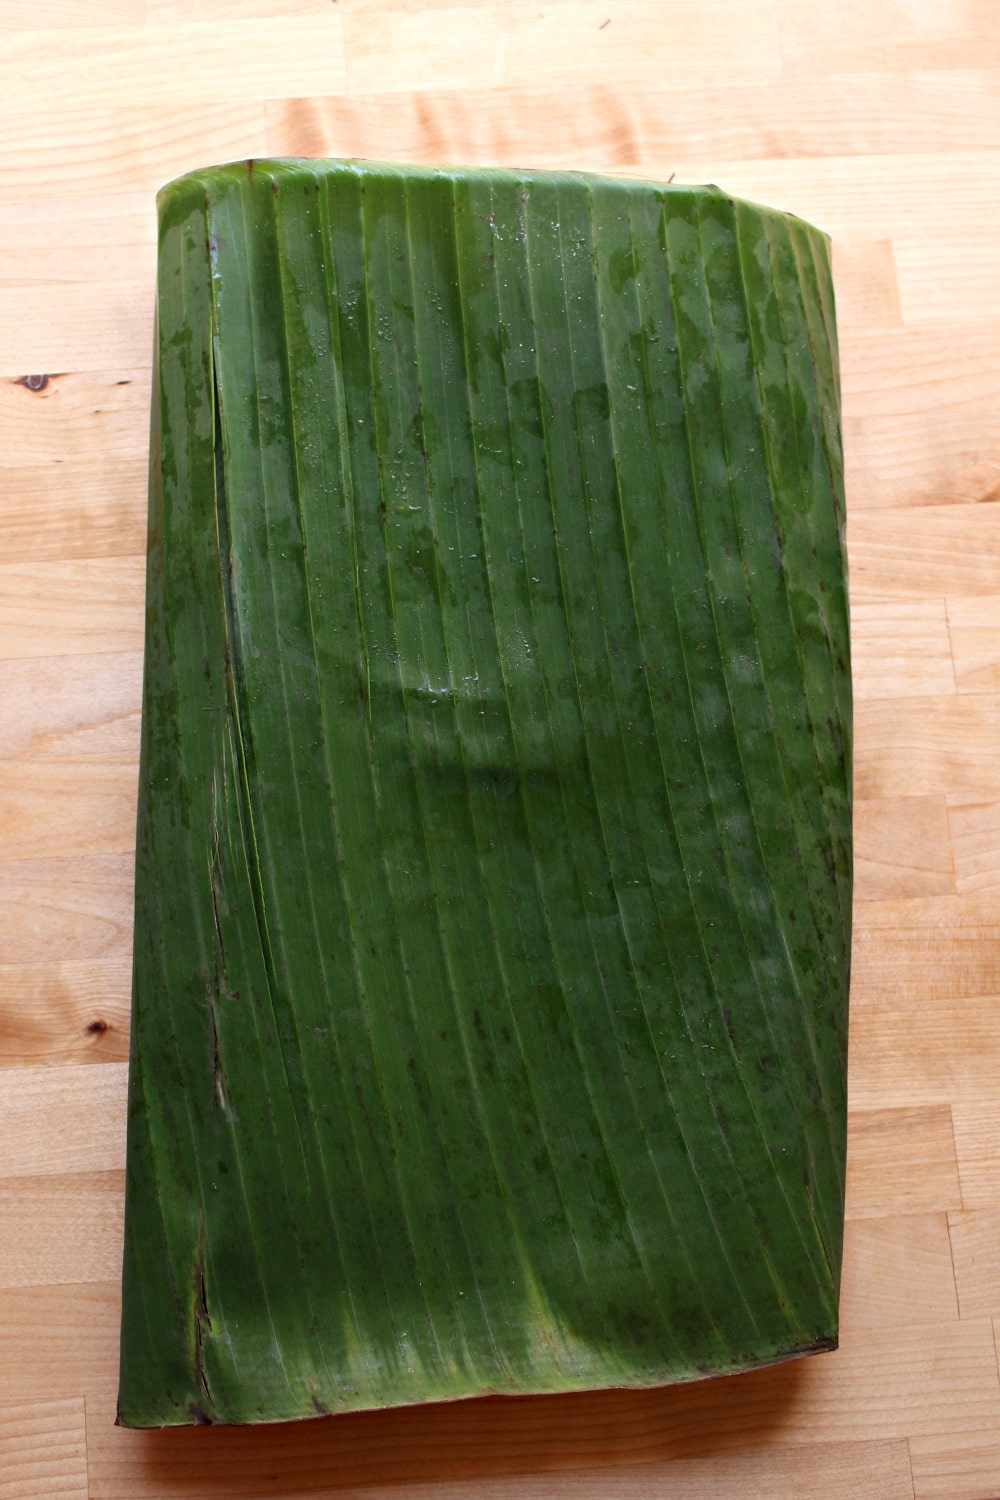 A large piece of banana leaf folded on a wooden surface.